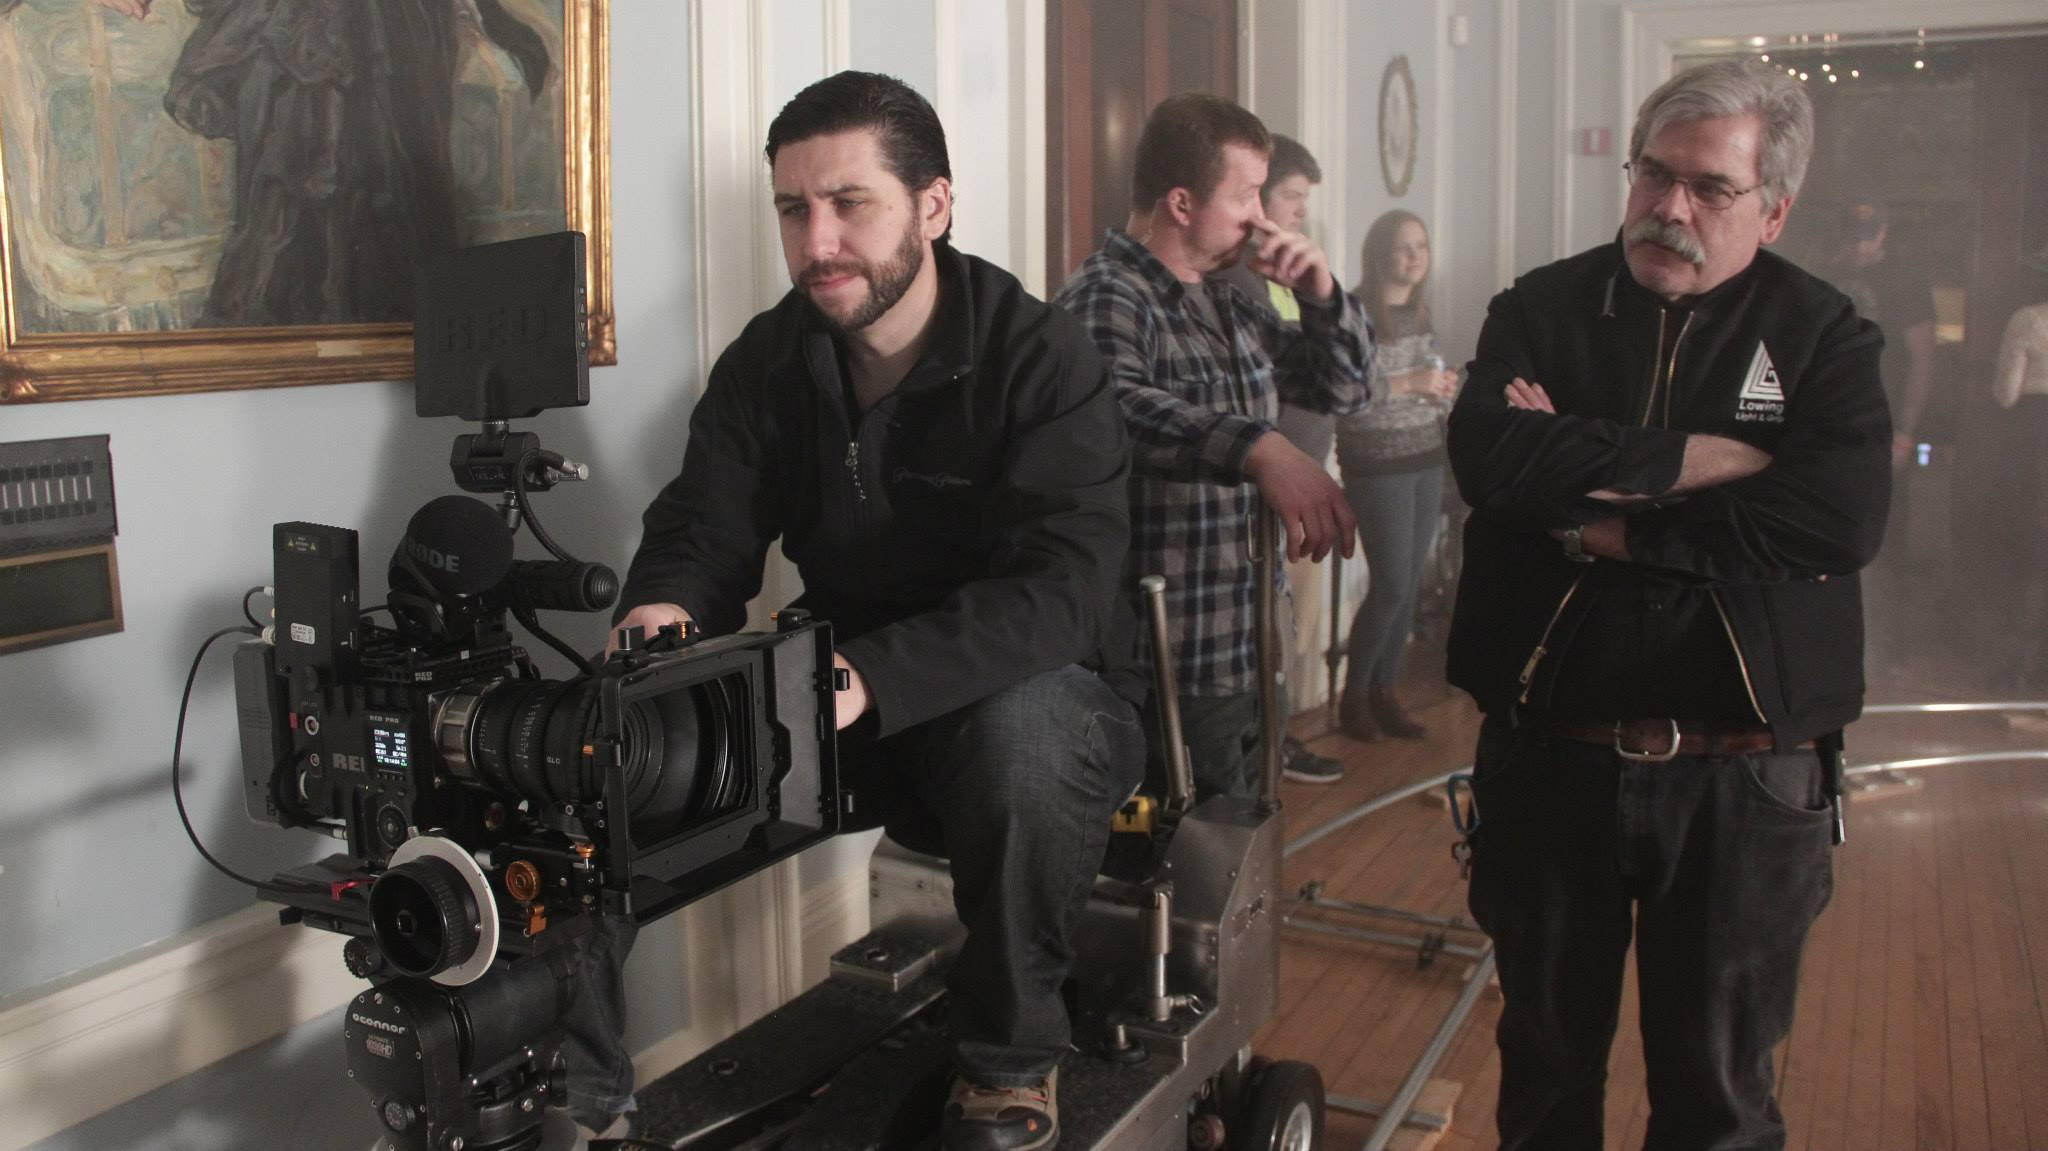 Gaffer David Lowing from    Lowing Light & Grip    working closely with DoP Tristan Barnard.